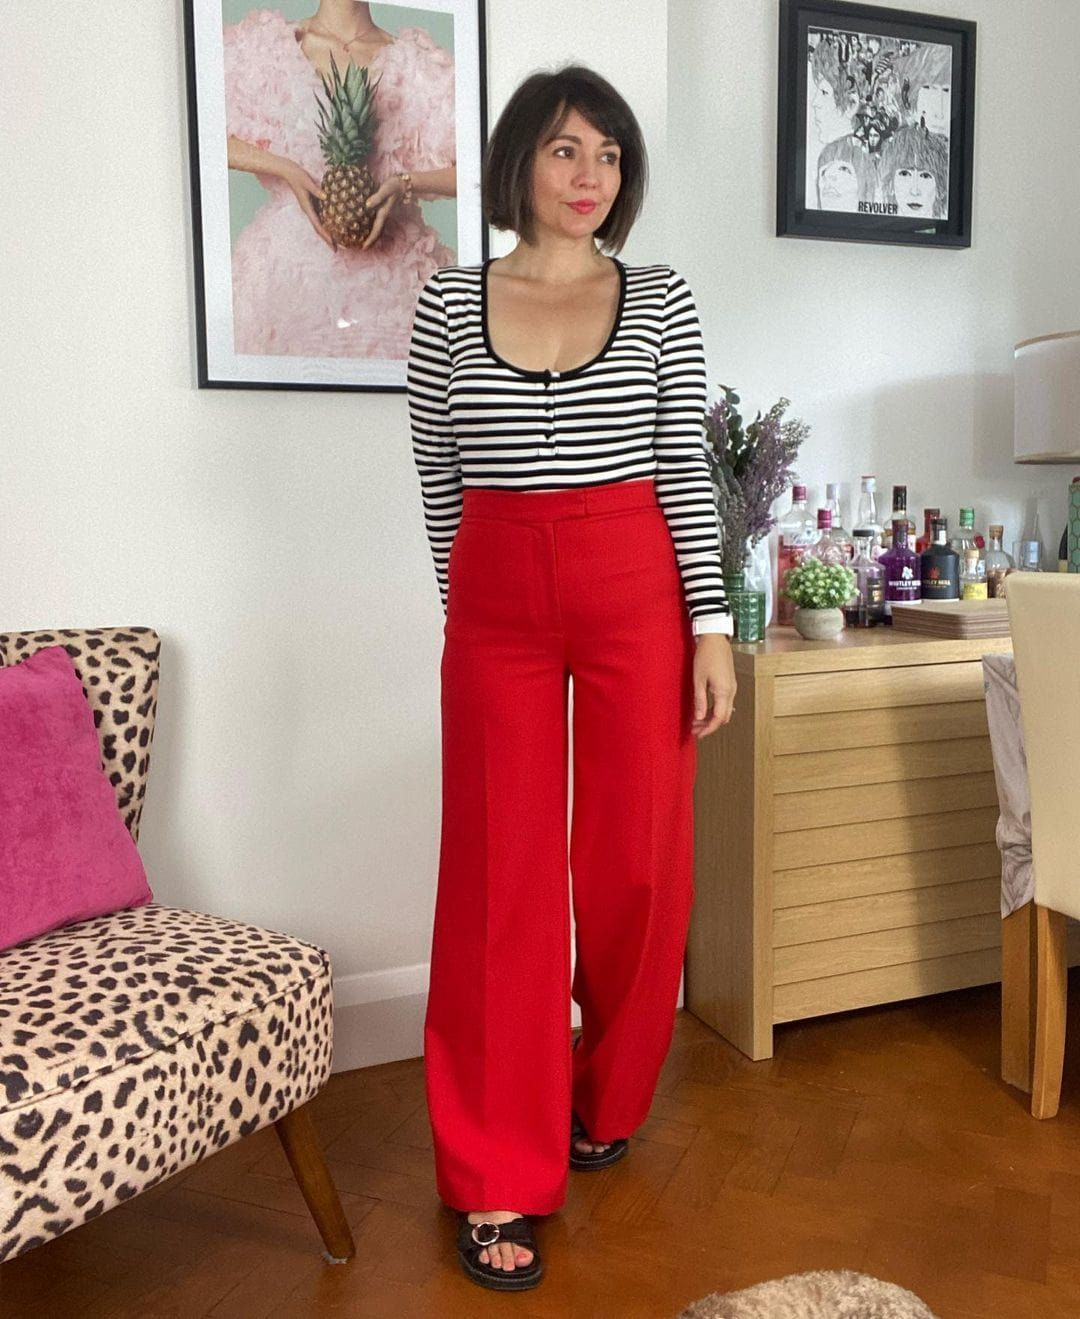 Nikkie in red pants and a striped top | 40plusstyle.com